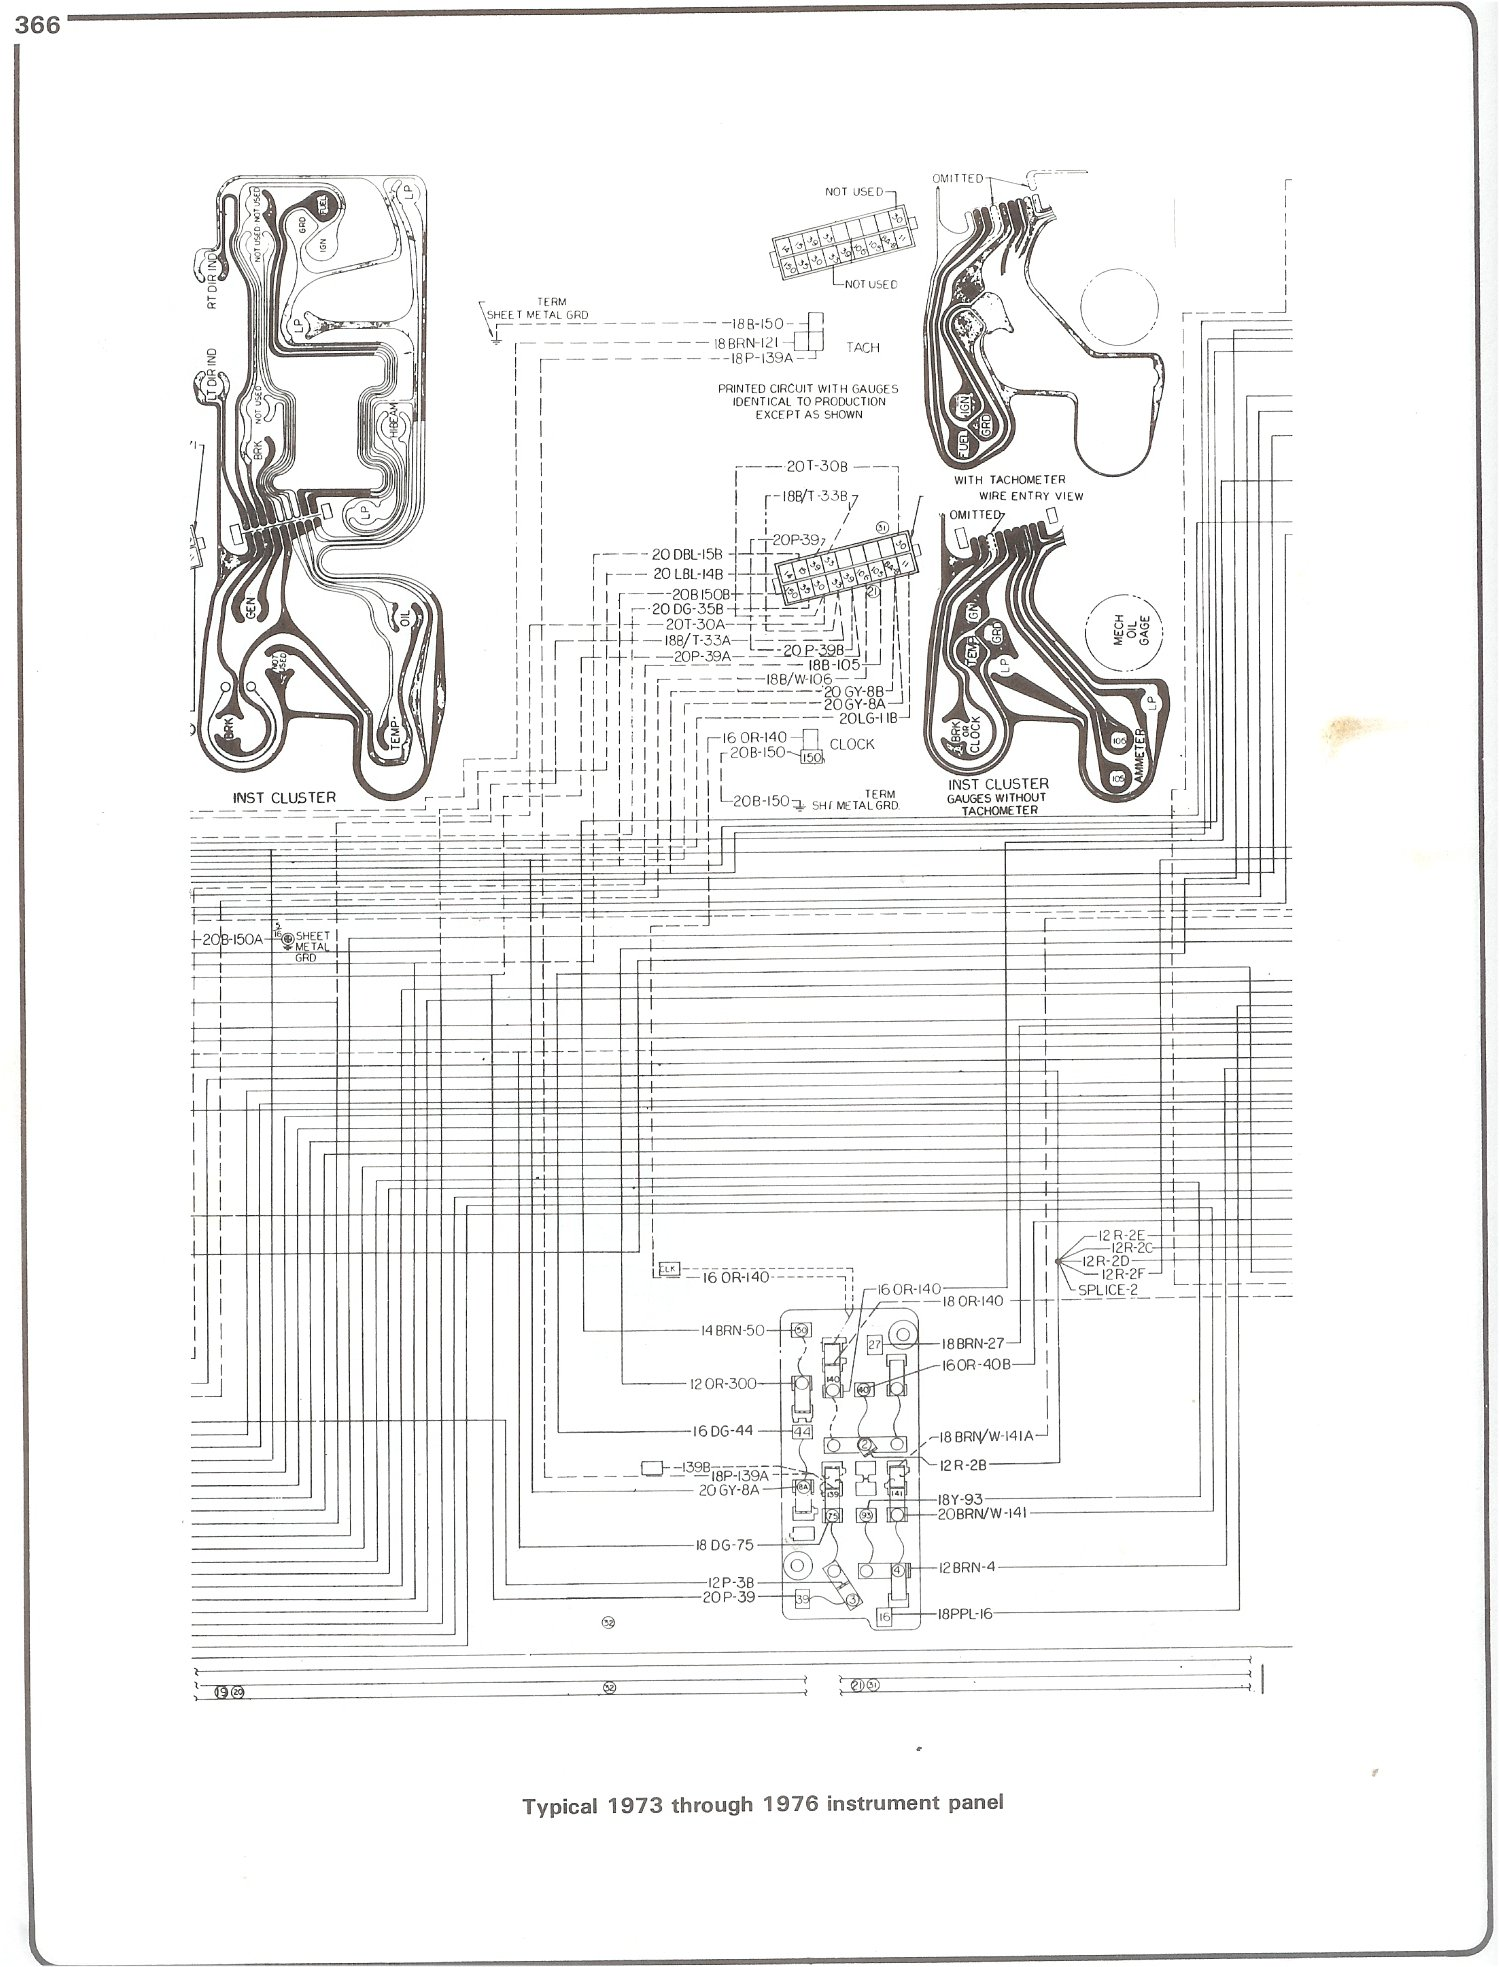 73 76_instrument complete 73 87 wiring diagrams 2000 Chevy Silverado Wiring Diagram at aneh.co